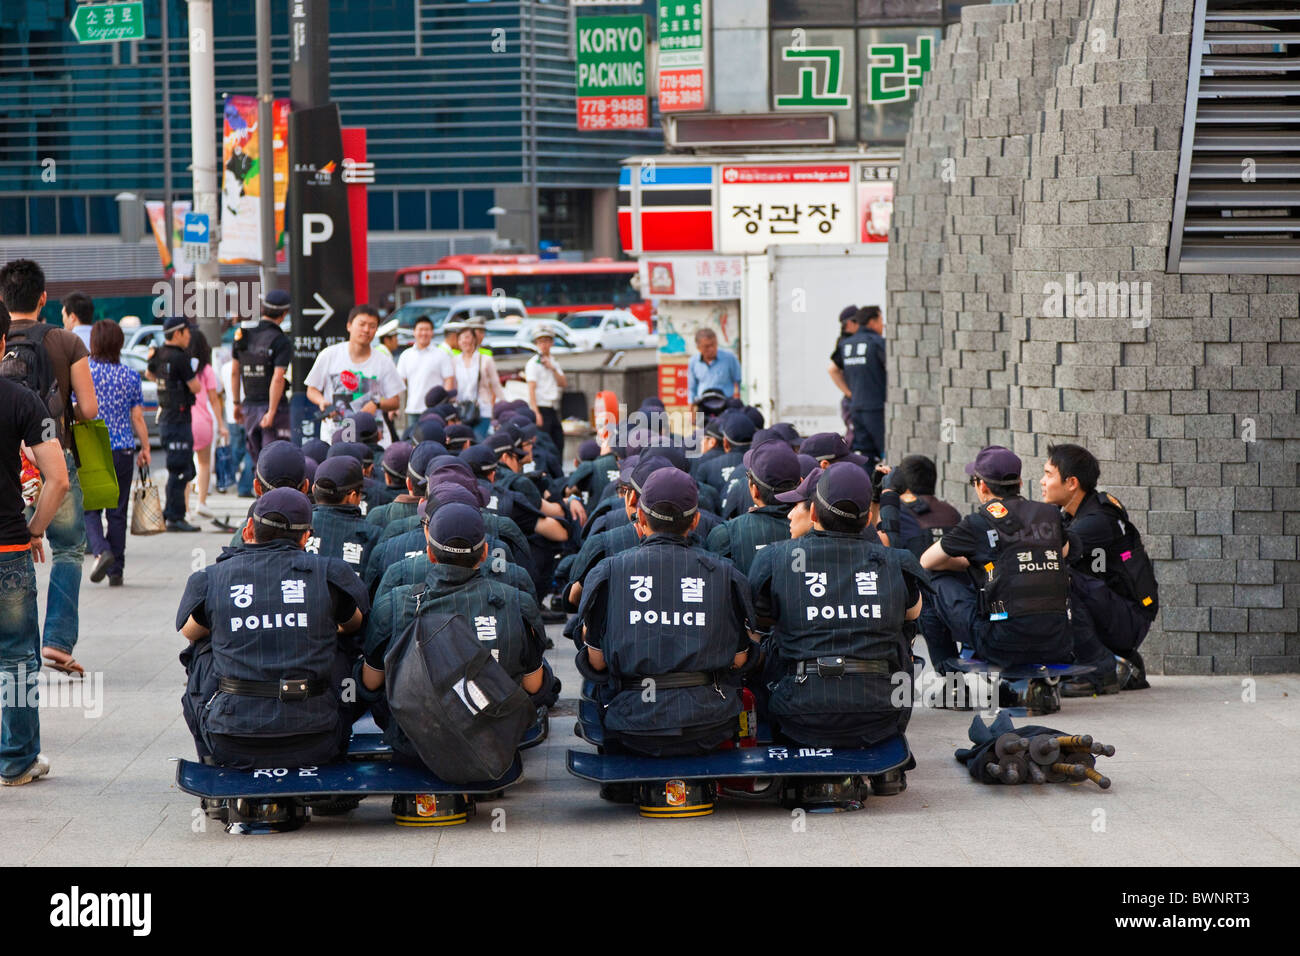 Riot police waiting at the ready in Myeong-dong, Seoul, South Korea. JMH3848 - Stock Image